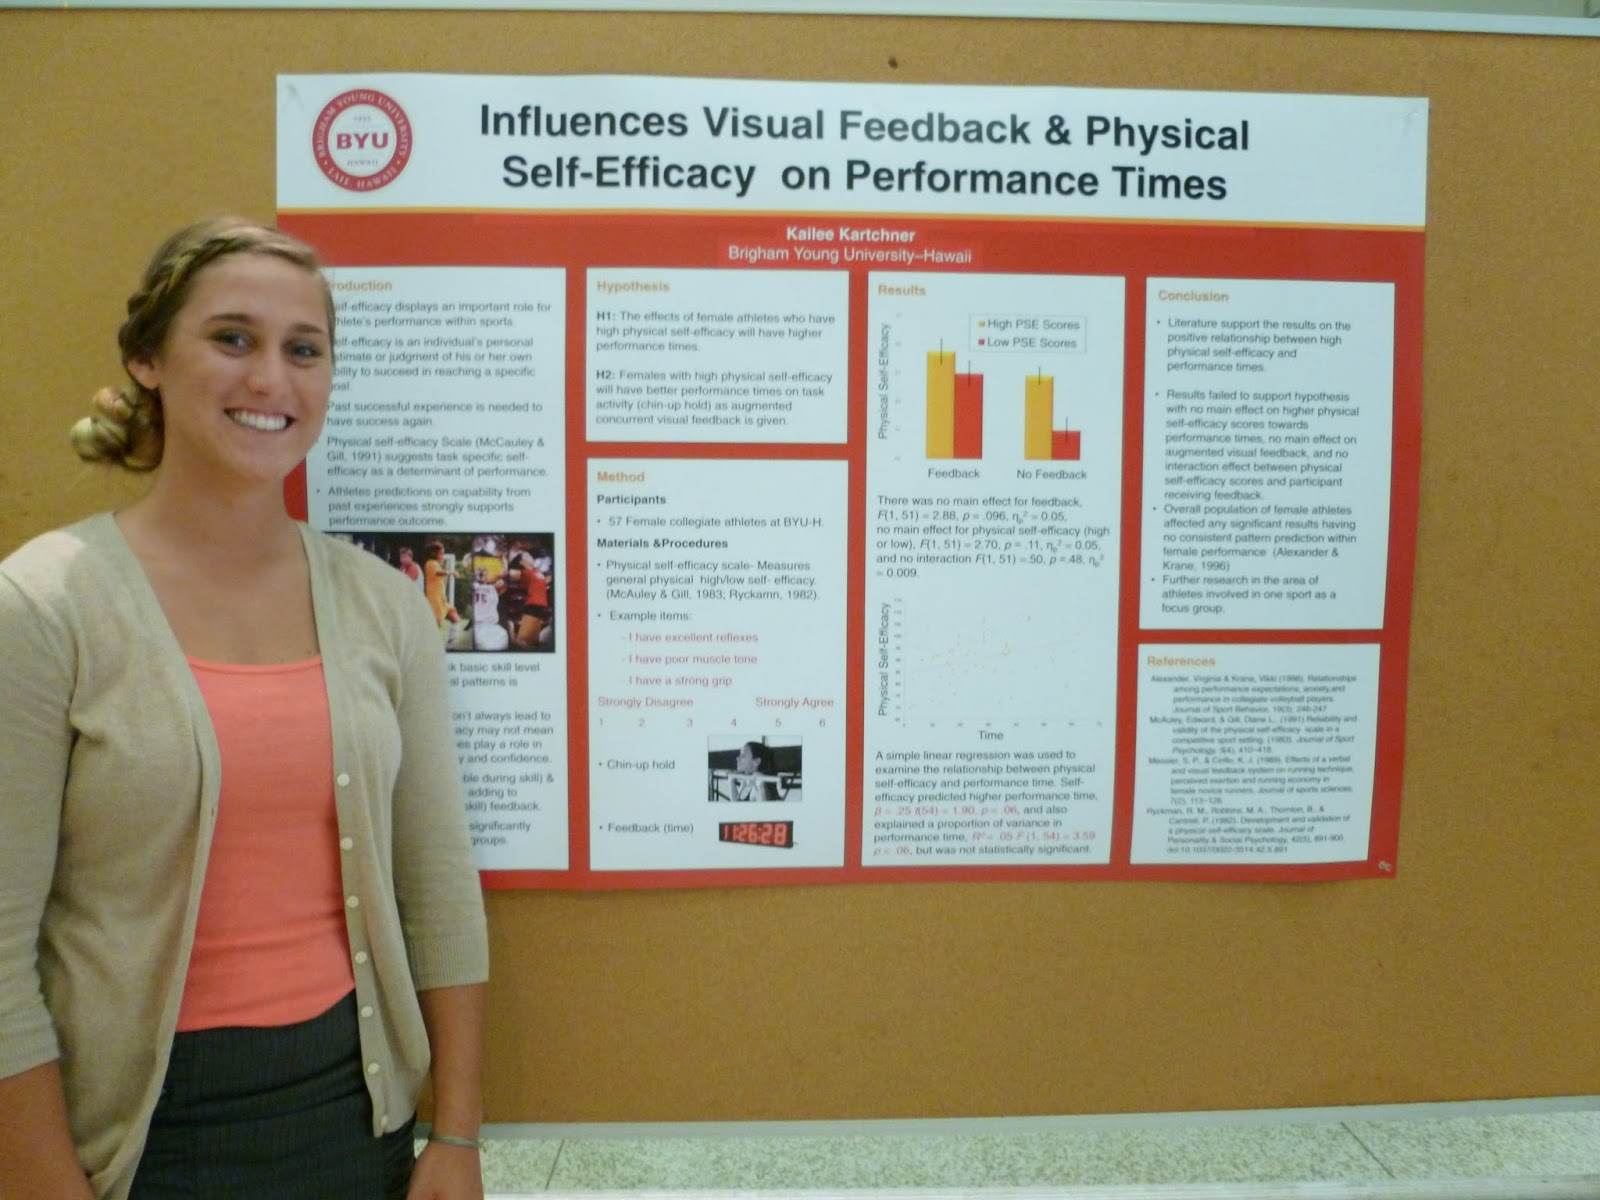 self-efficacy and dissertation performance among sport students Certifies that the thesis has been approved in accordance with university  requirements  performance keywords: sport perfectionism, self-efficacy,  perceived performance  in a sample of college students (stoeber, hutchfield et  al, 2008.